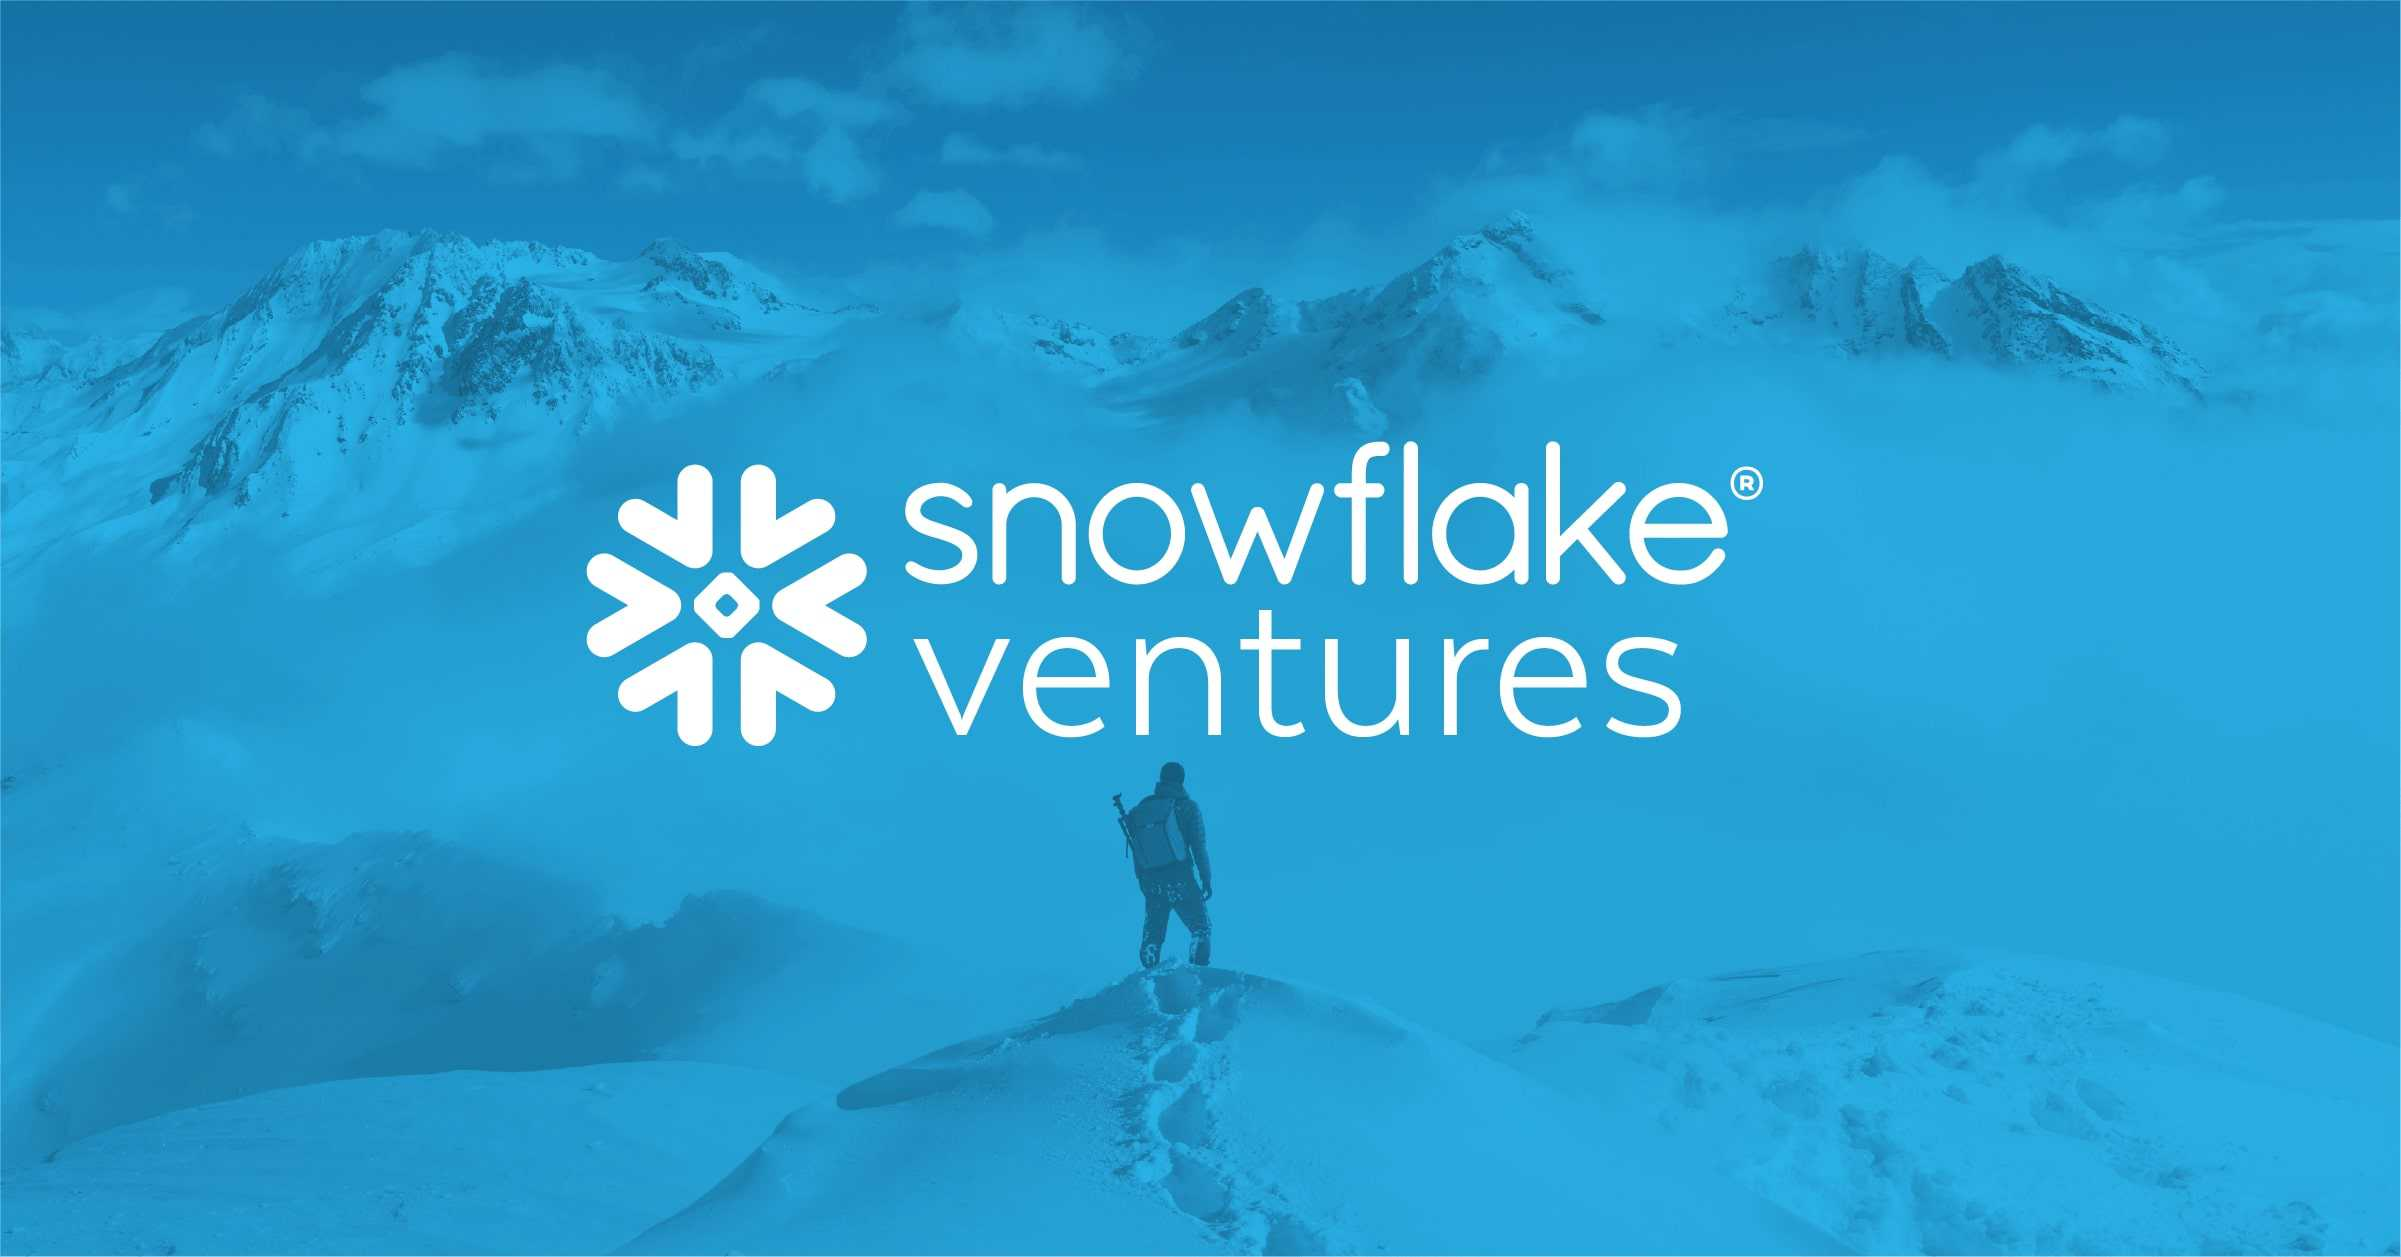 Snowflake Ventures Invests in Alation to Expand Visibility, Trust and Security for Enterprise Data